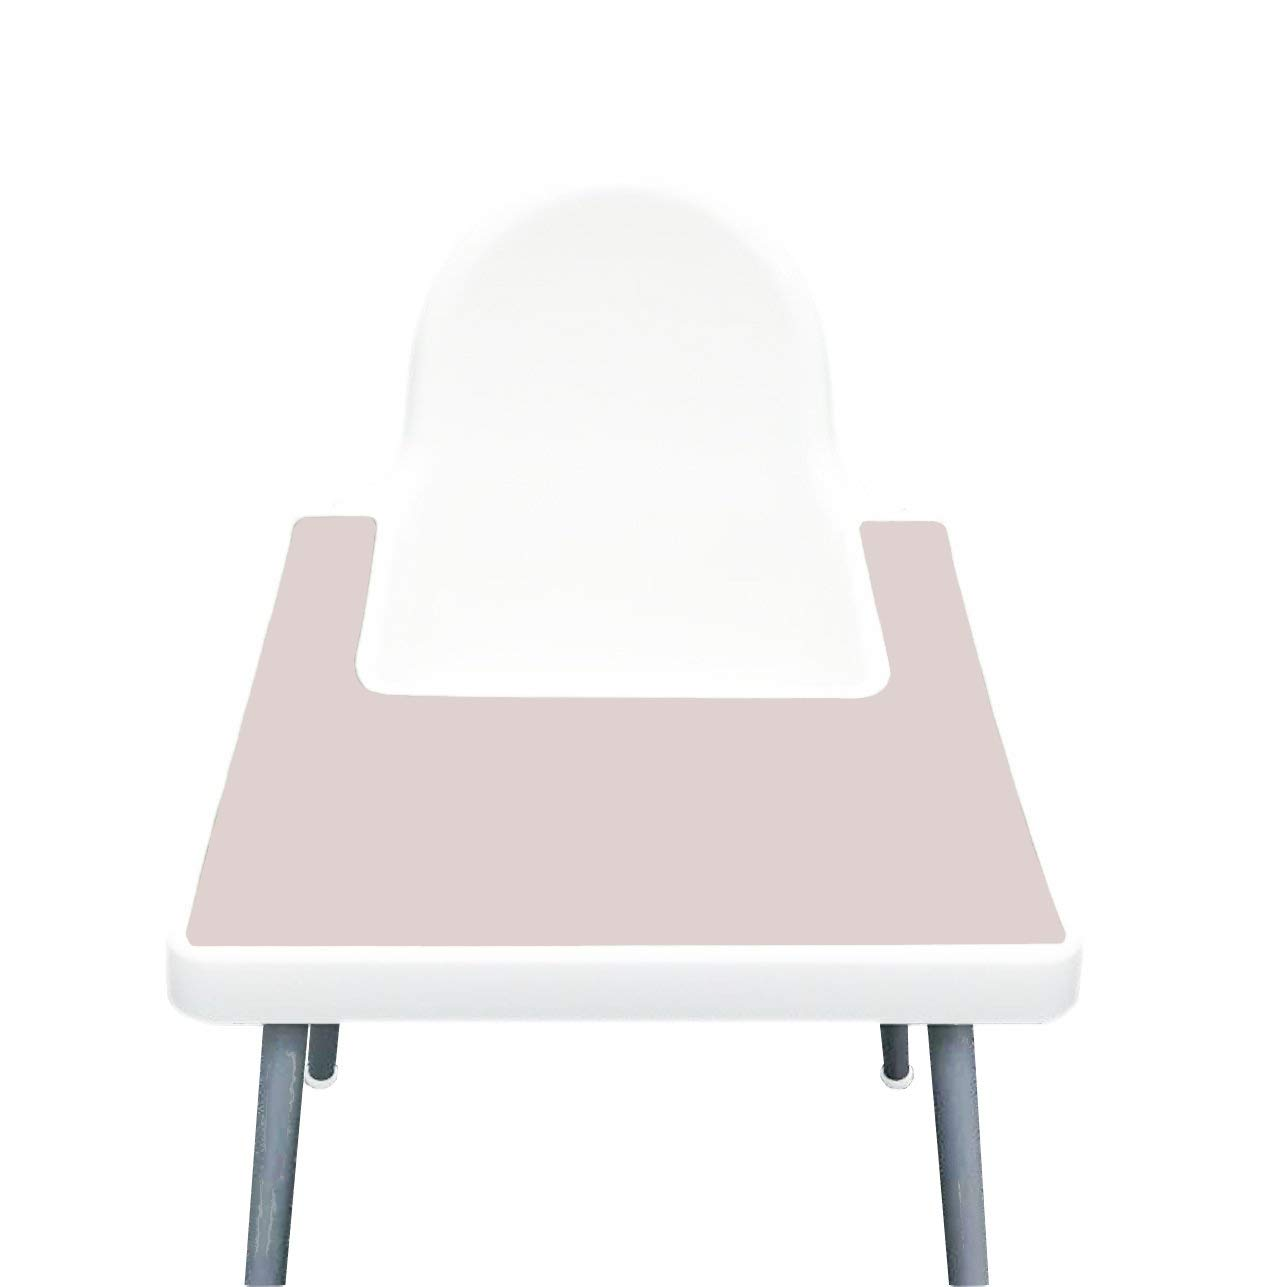 High Chair Placemat for Antilop Baby High Chair – Silicone Placemats for Baby and Toddler Finger Food Dropping – BPA Free, Dishwasher Safe – Non Slip Food Mat + More Colors (Dusty Rose)